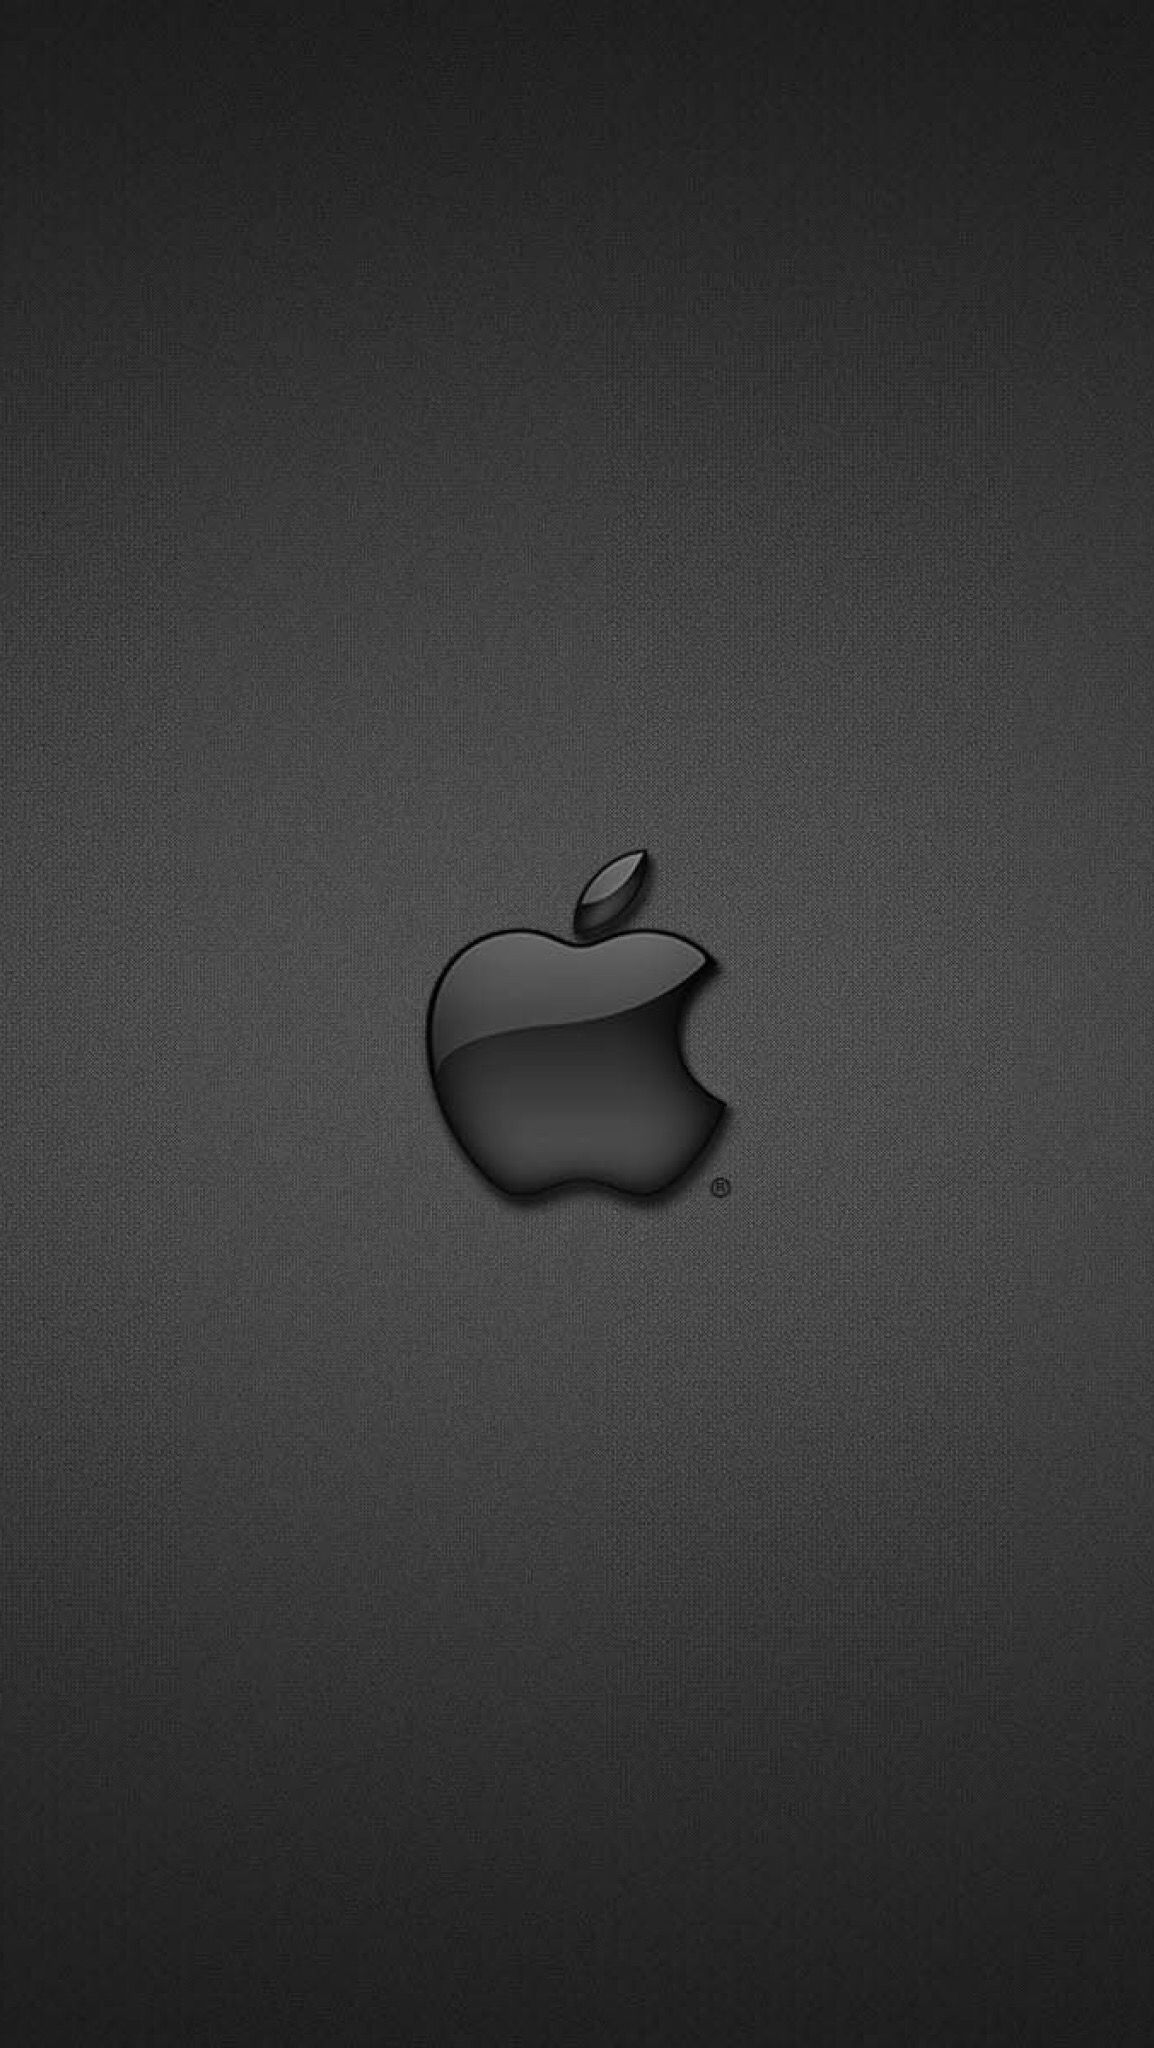 Обои iphone wallpapers apple logo | Обои iphone wallpapers | pinterest